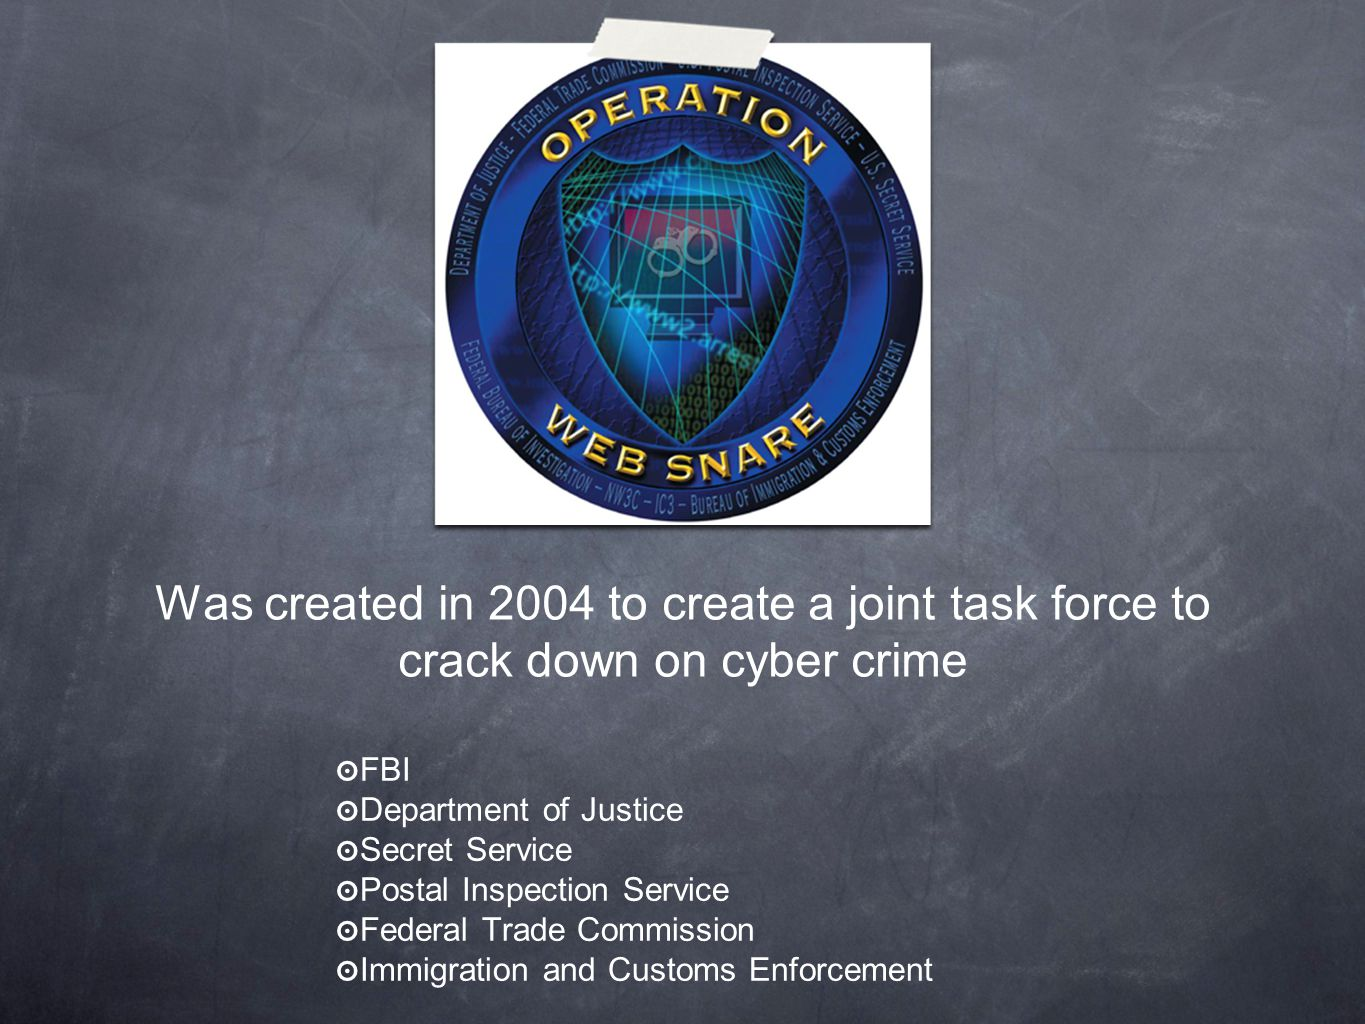 Was created in 2004 to create a joint task force to crack down on cyber crime ๏ FBI ๏ Department of Justice ๏ Secret Service ๏ Postal Inspection Service ๏ Federal Trade Commission ๏ Immigration and Customs Enforcement